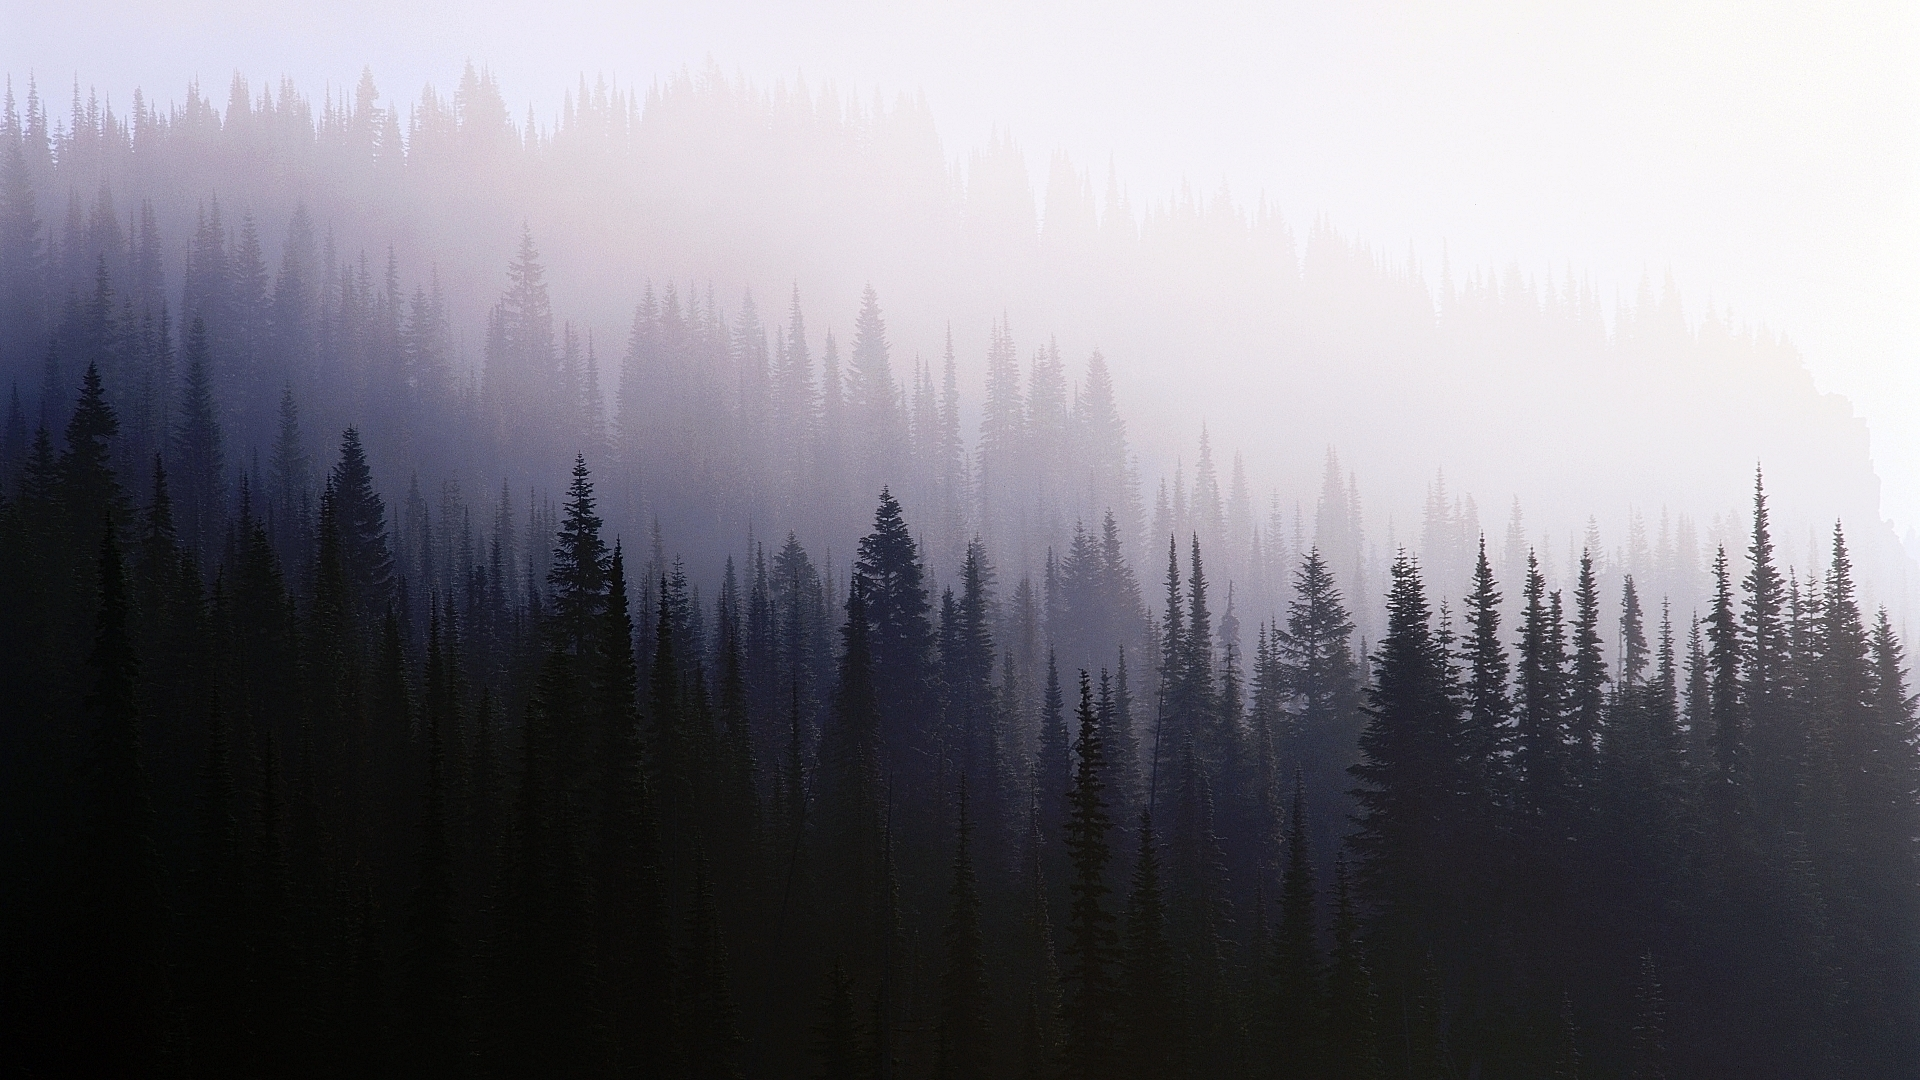 496 Fog Hd Wallpapers Backgrounds Wallpaper Abyss Page 9